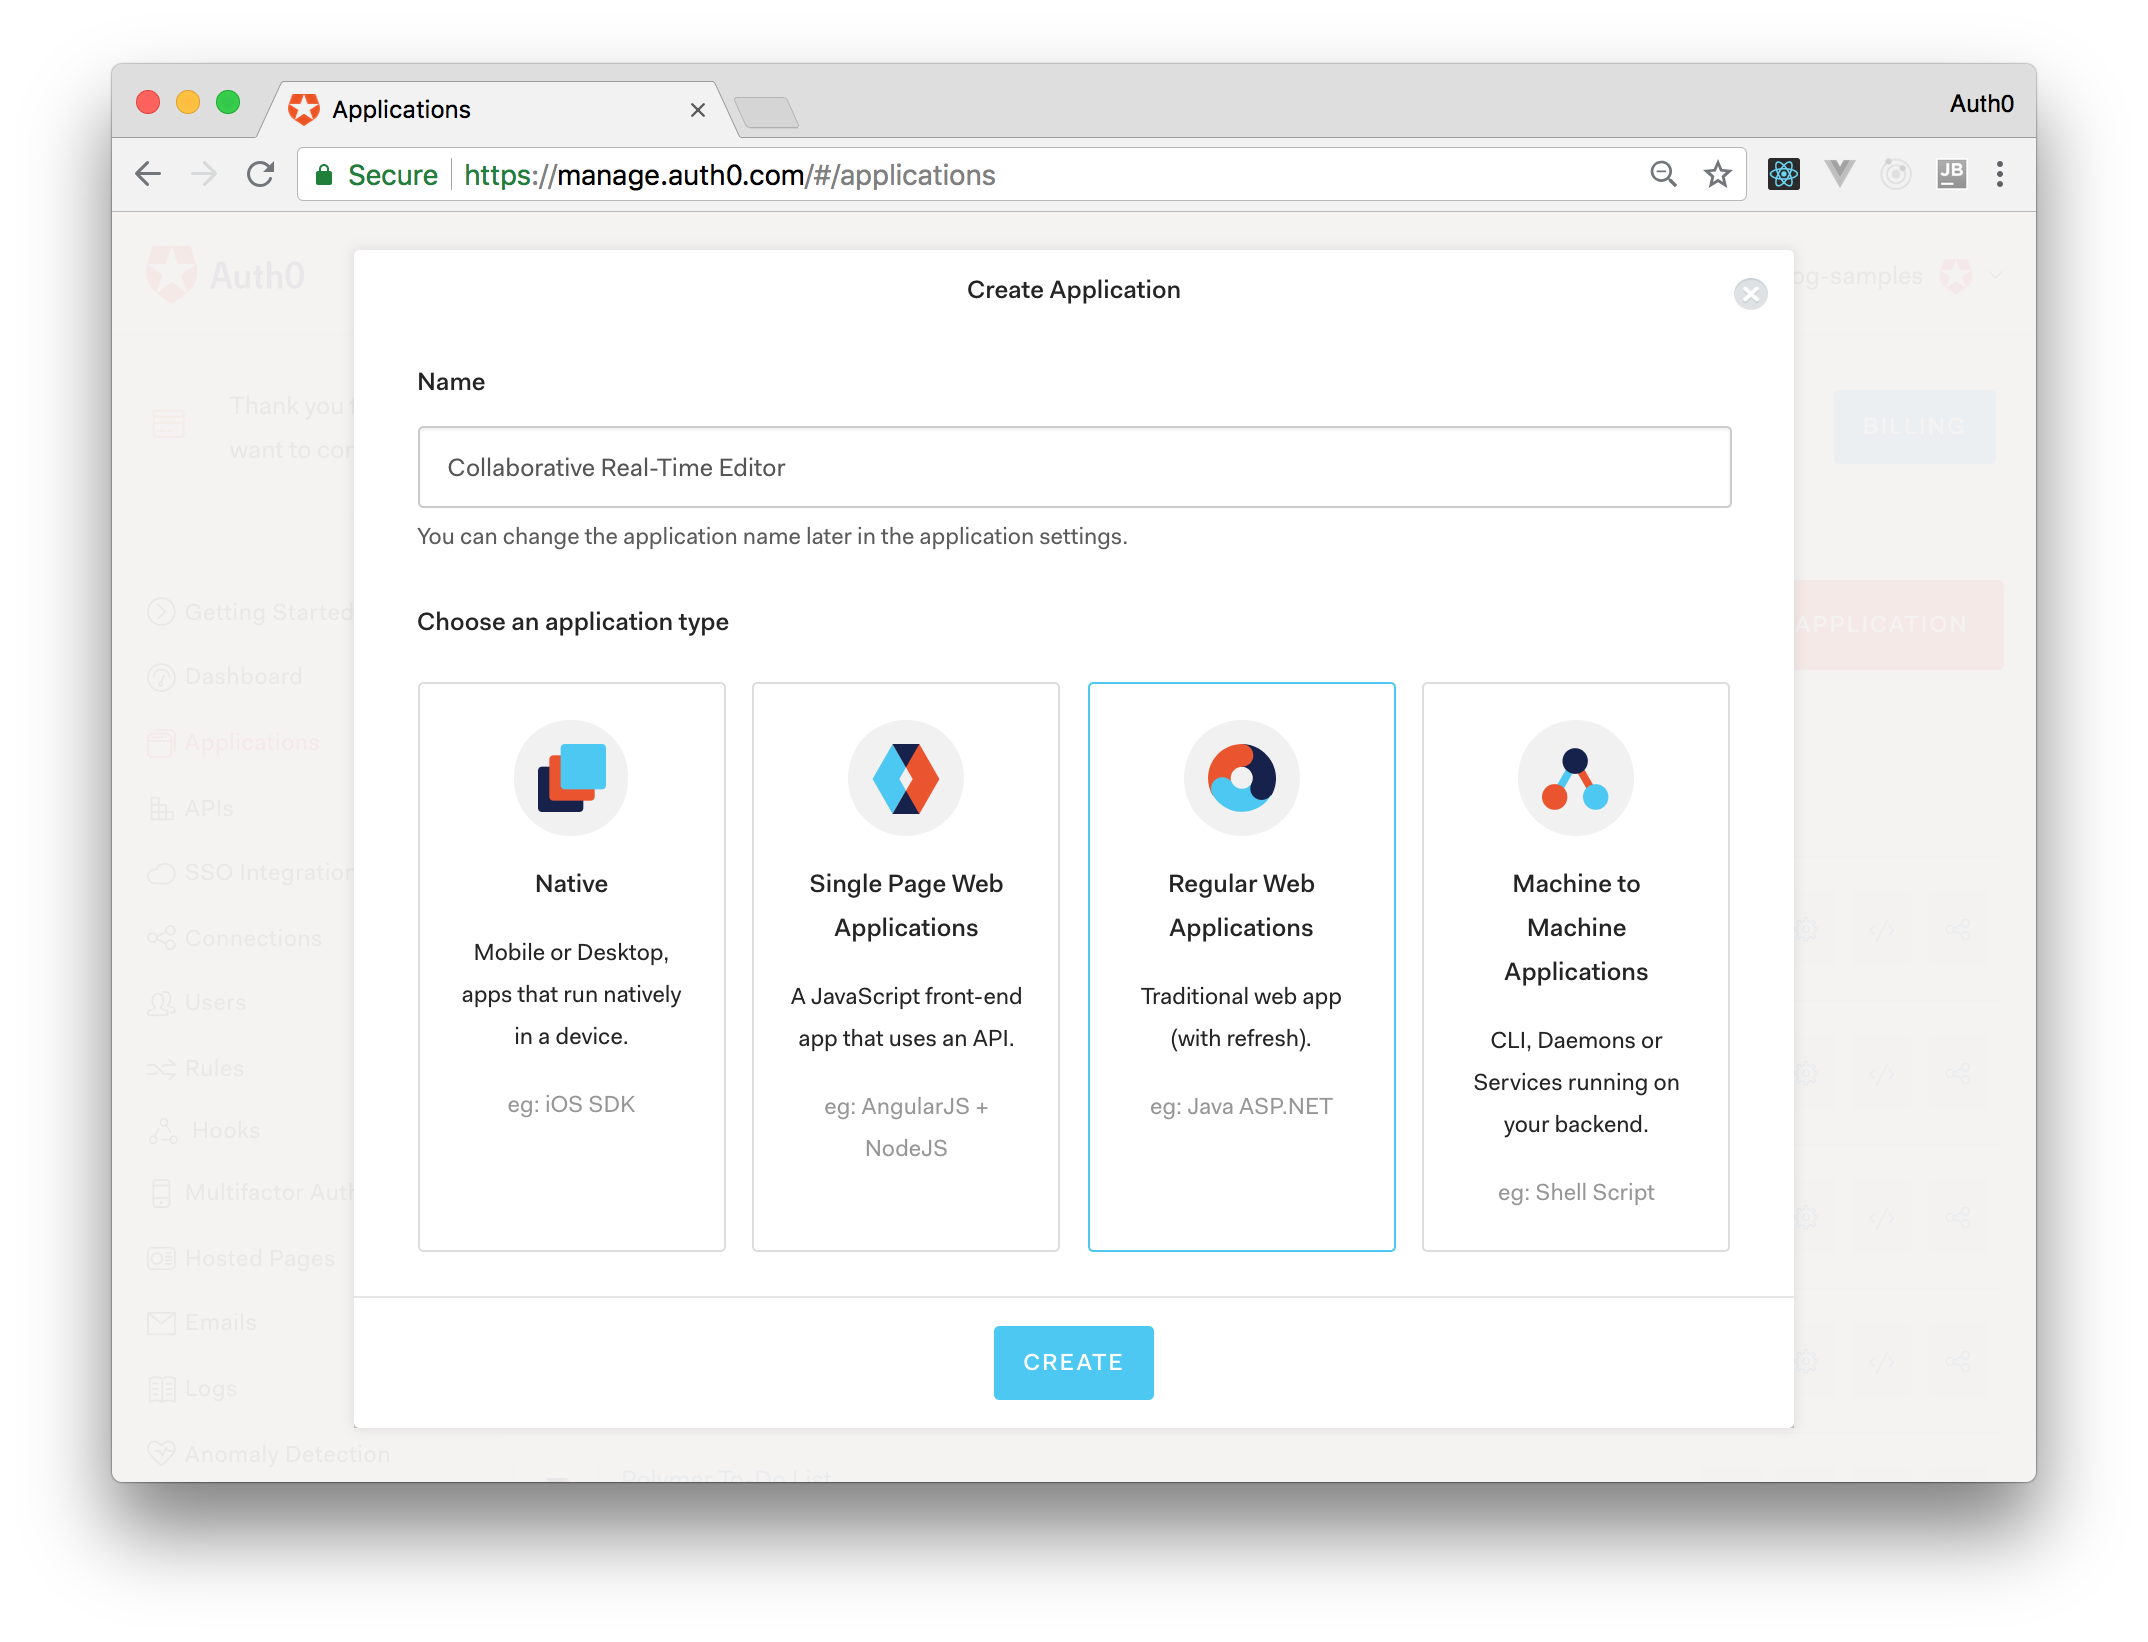 Creating an Auth0 Application